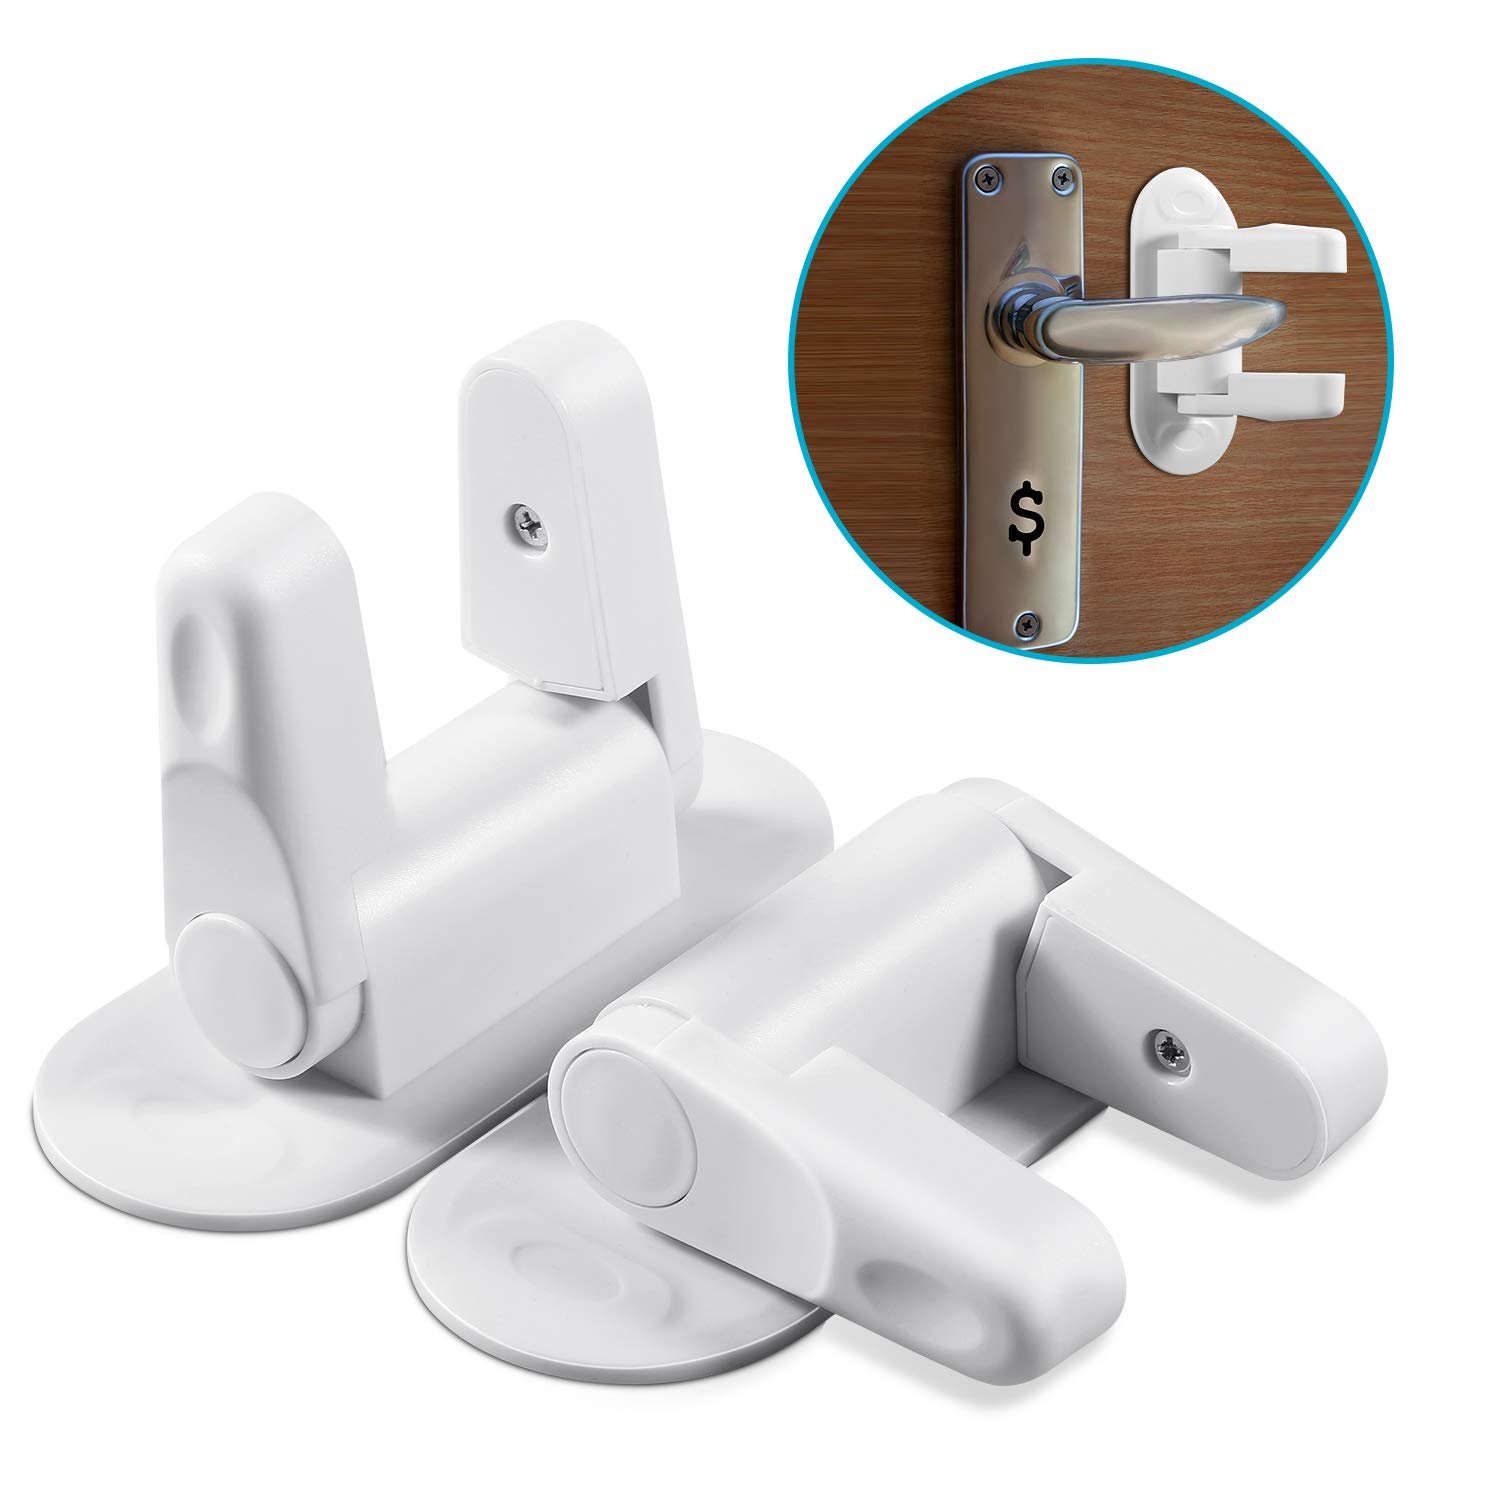 Door Lever Lock (2 Packs) Pets Child Proof Door Handle Latches Baby Safety Door Locks 3M Adhesive UZOPI